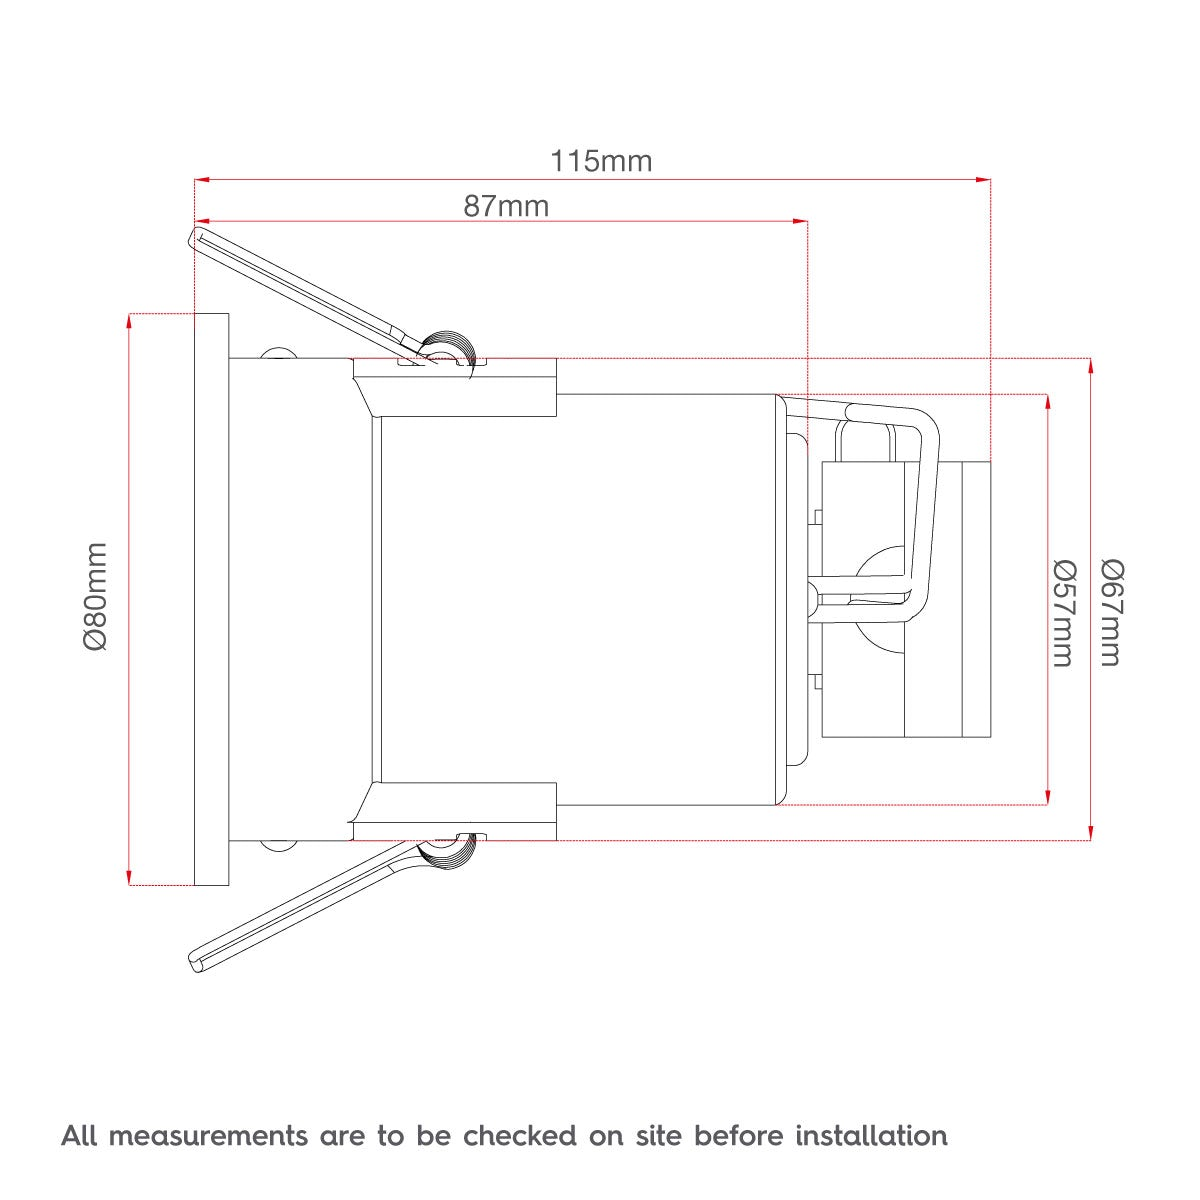 Dimensions for Forum fixed fire rated bathroom downlight in chrome